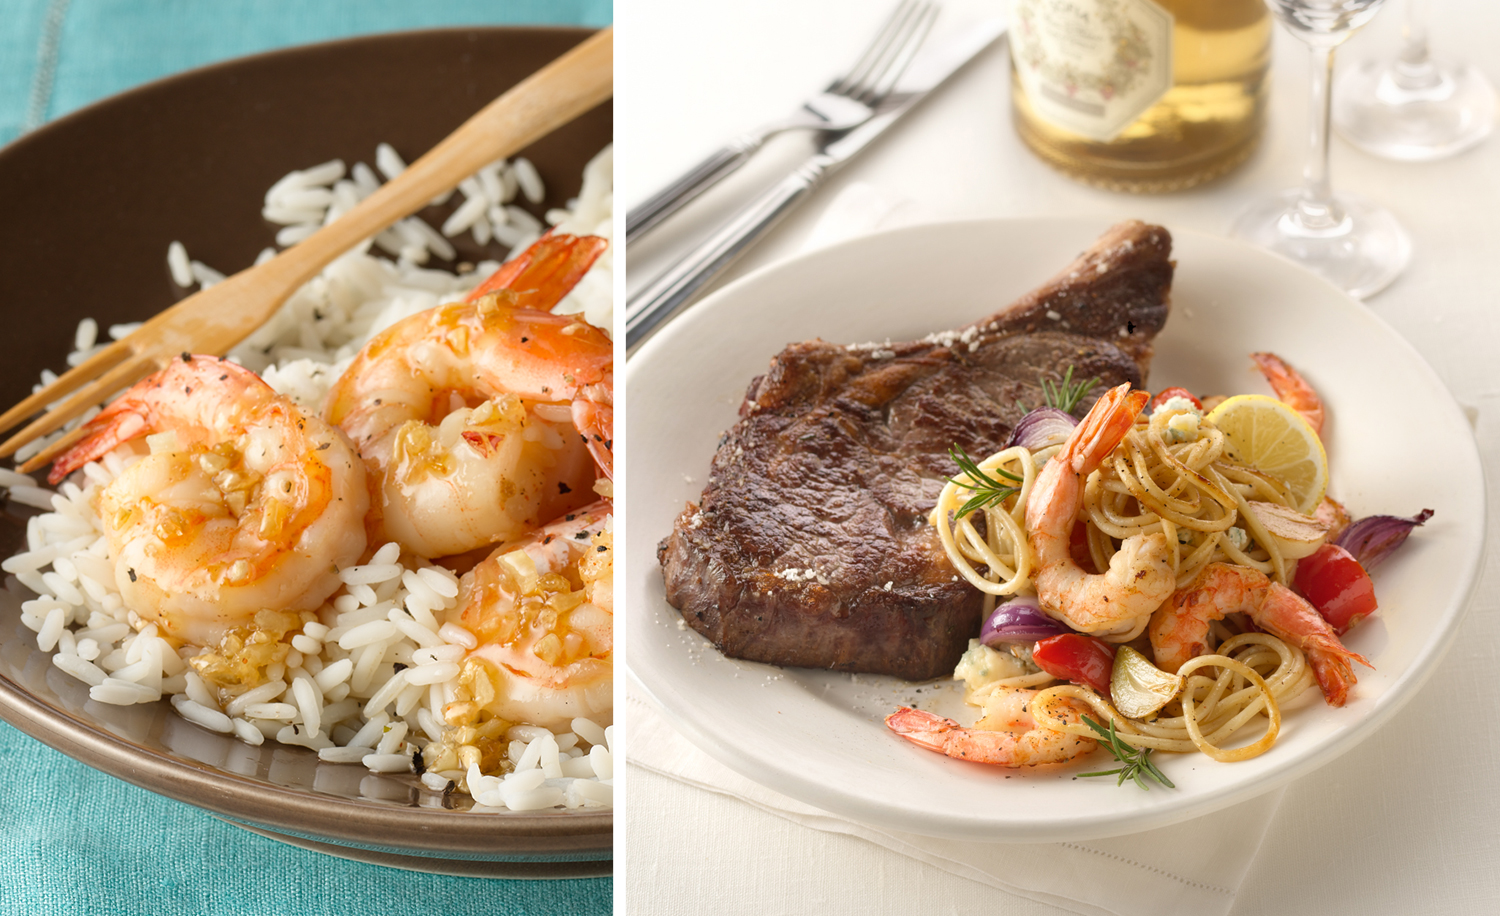 Shrimp and Steak | Tony Kubat Photography